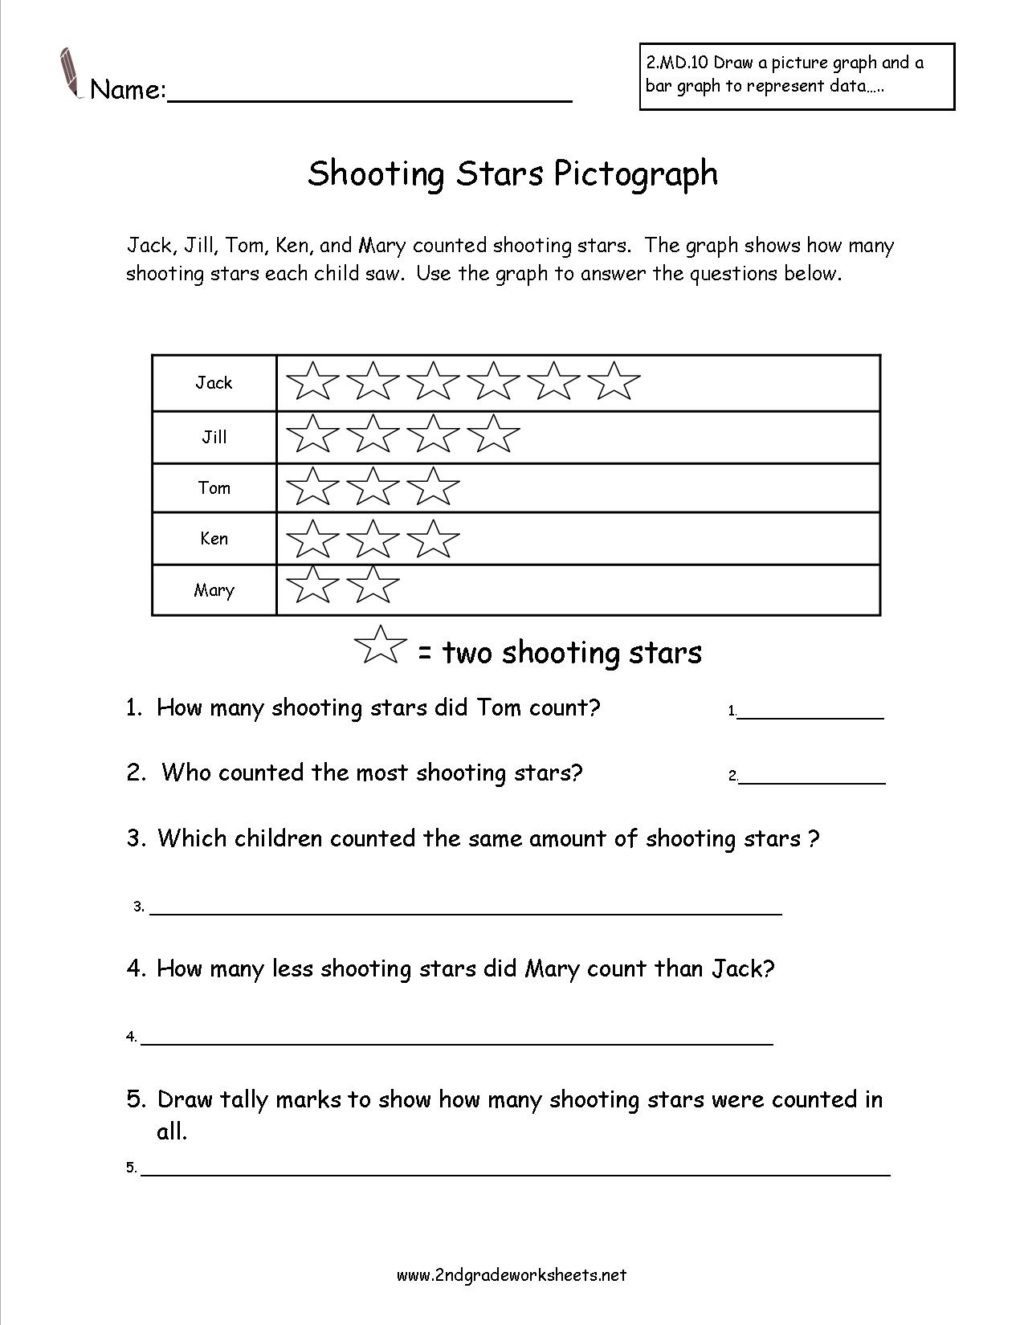 2nd Grade Sequencing Worksheets Worksheet Third Grade Reading Worksheets Worksheet Second